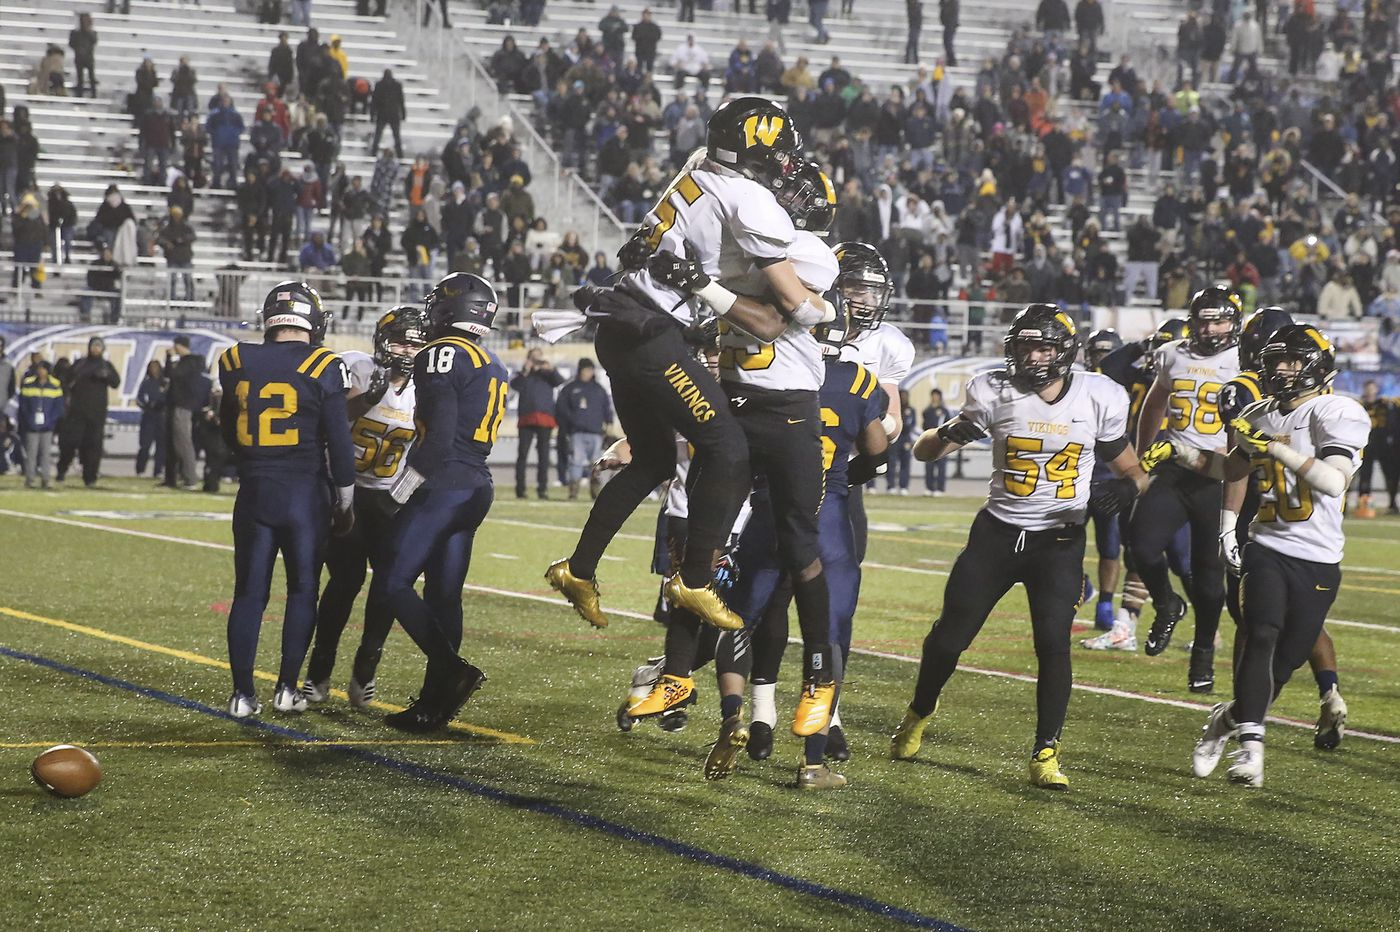 Archbishop Wood beats Cheltenham in PIAA 5A state championship with game-winning drive